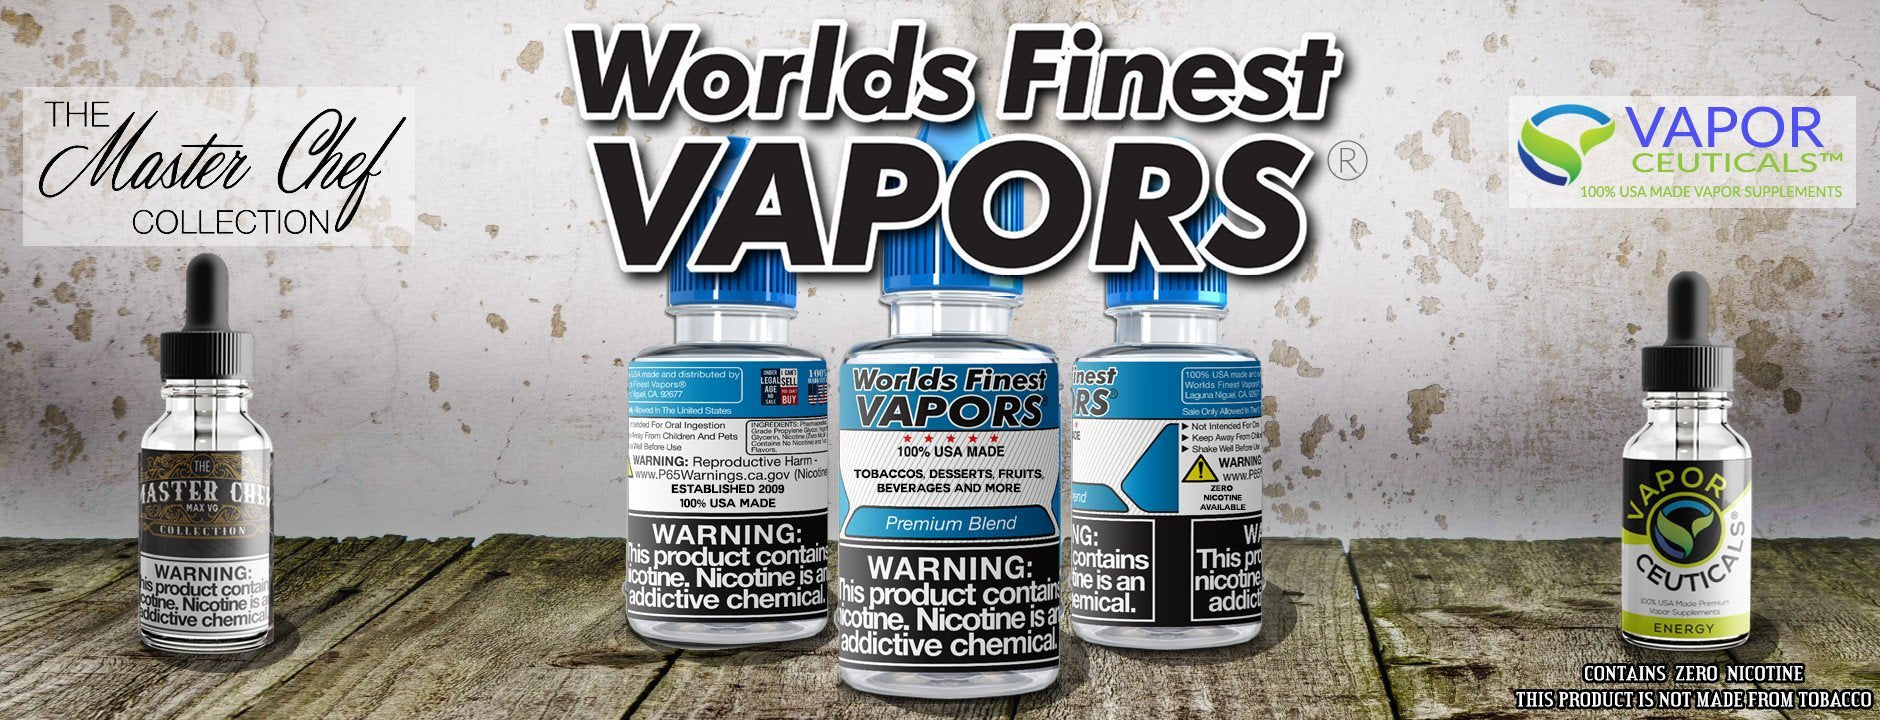 Worlds Finest Vapors | 100% USA Made Vape Juice Natural E-liquid Vapor Liquid